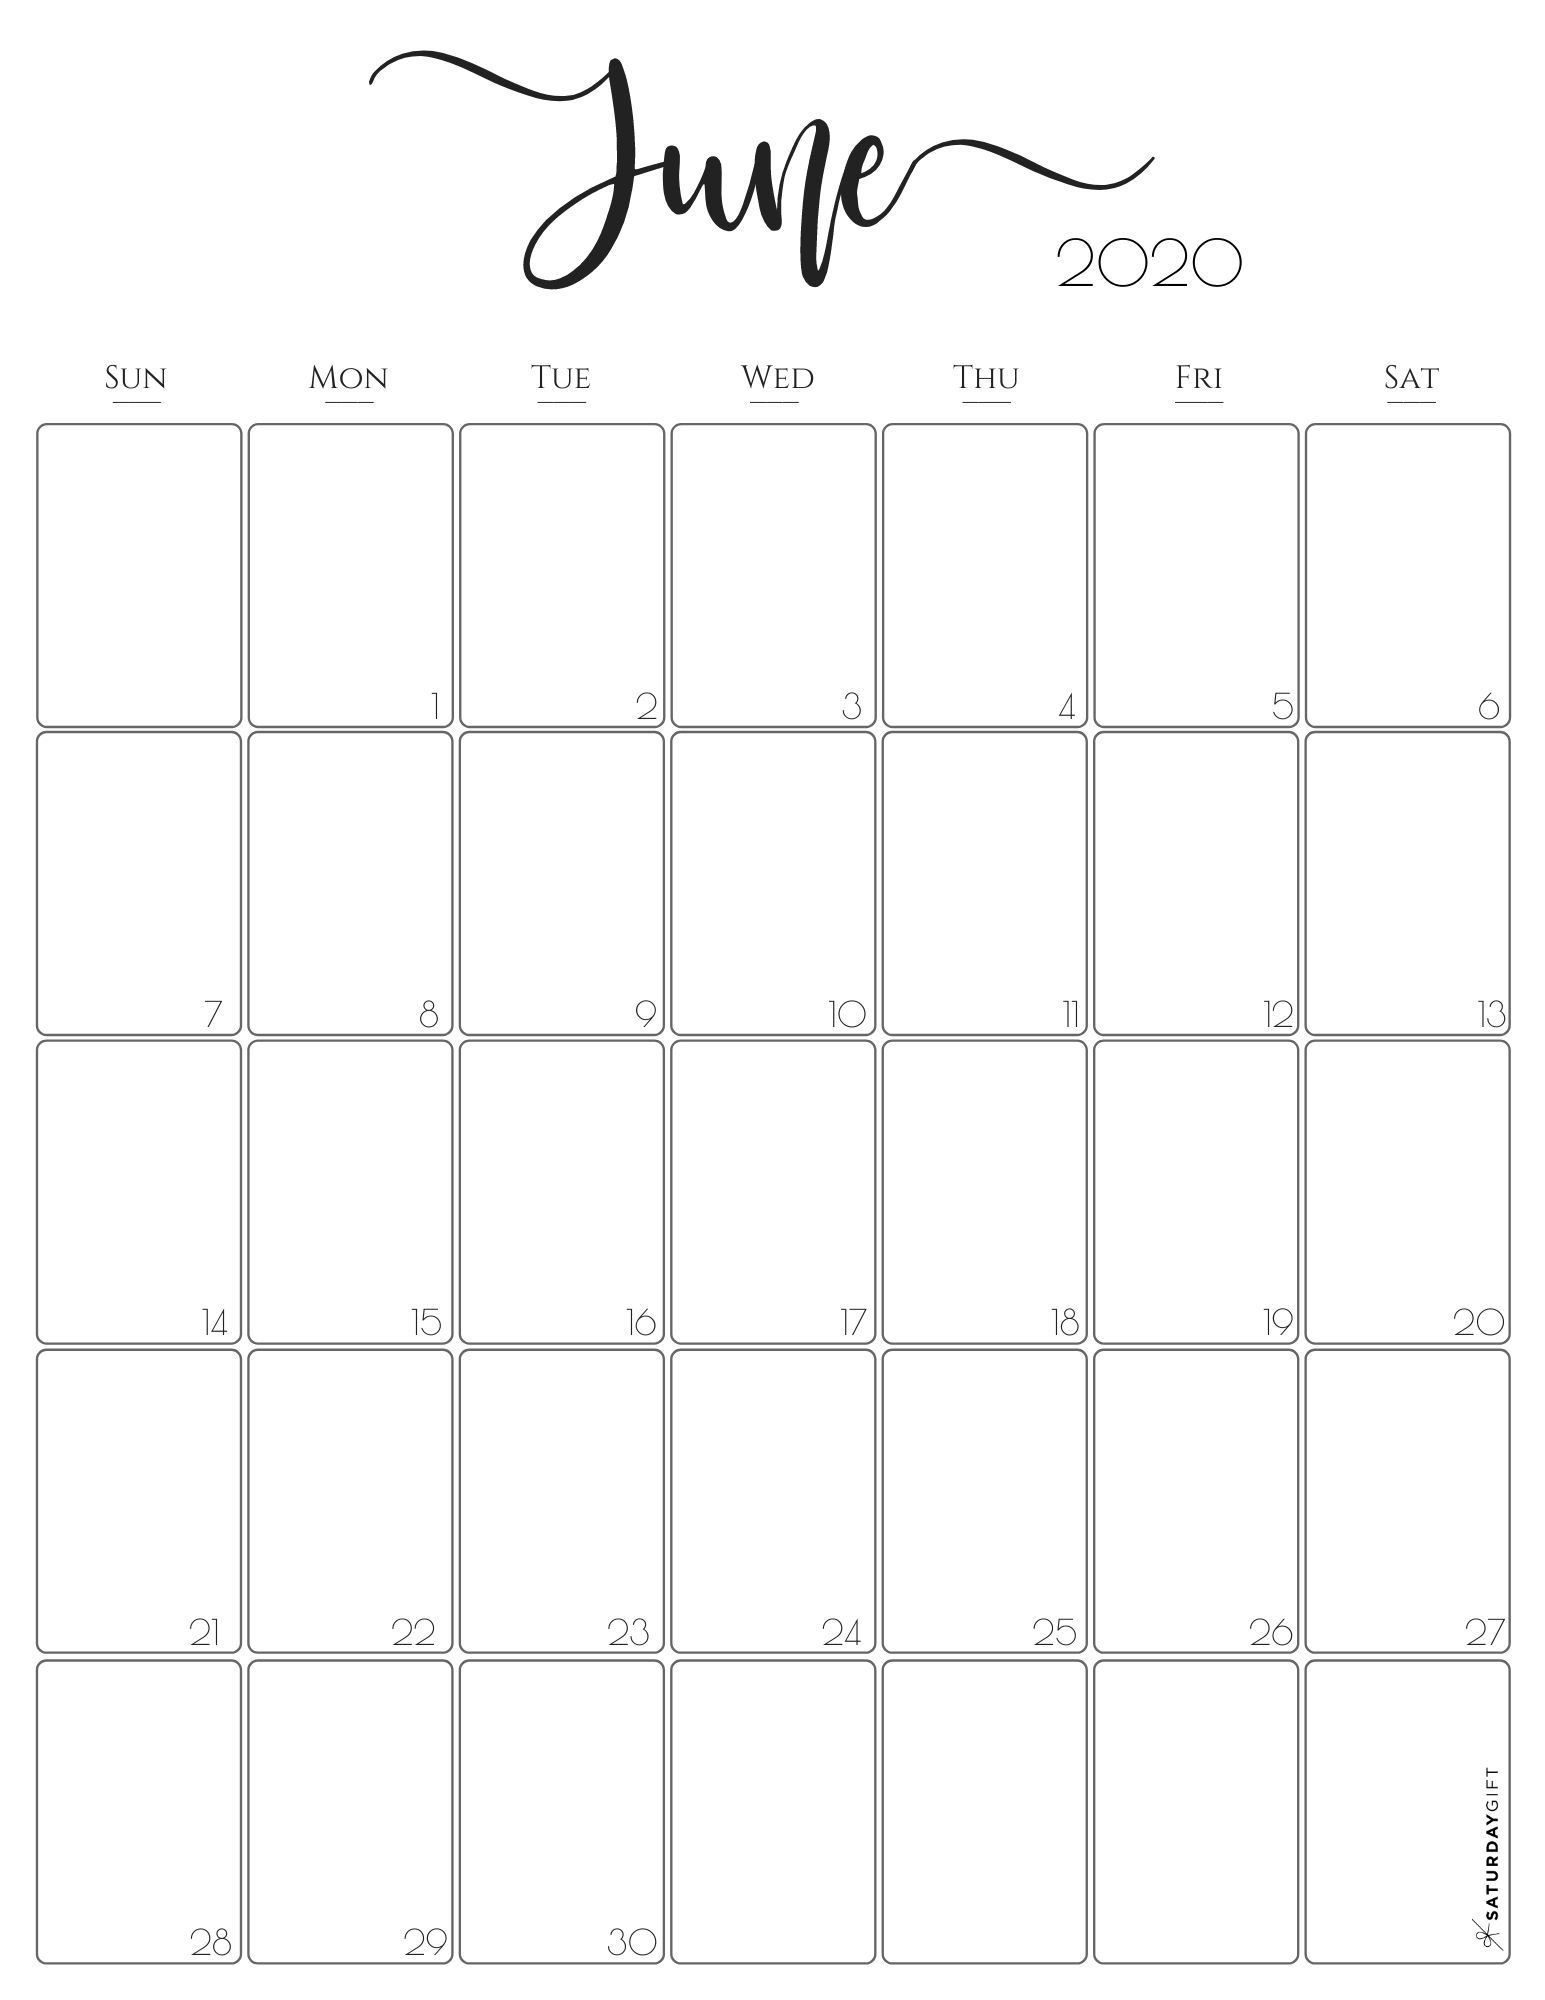 Take 2021 June Calendars To Print Without Downloading